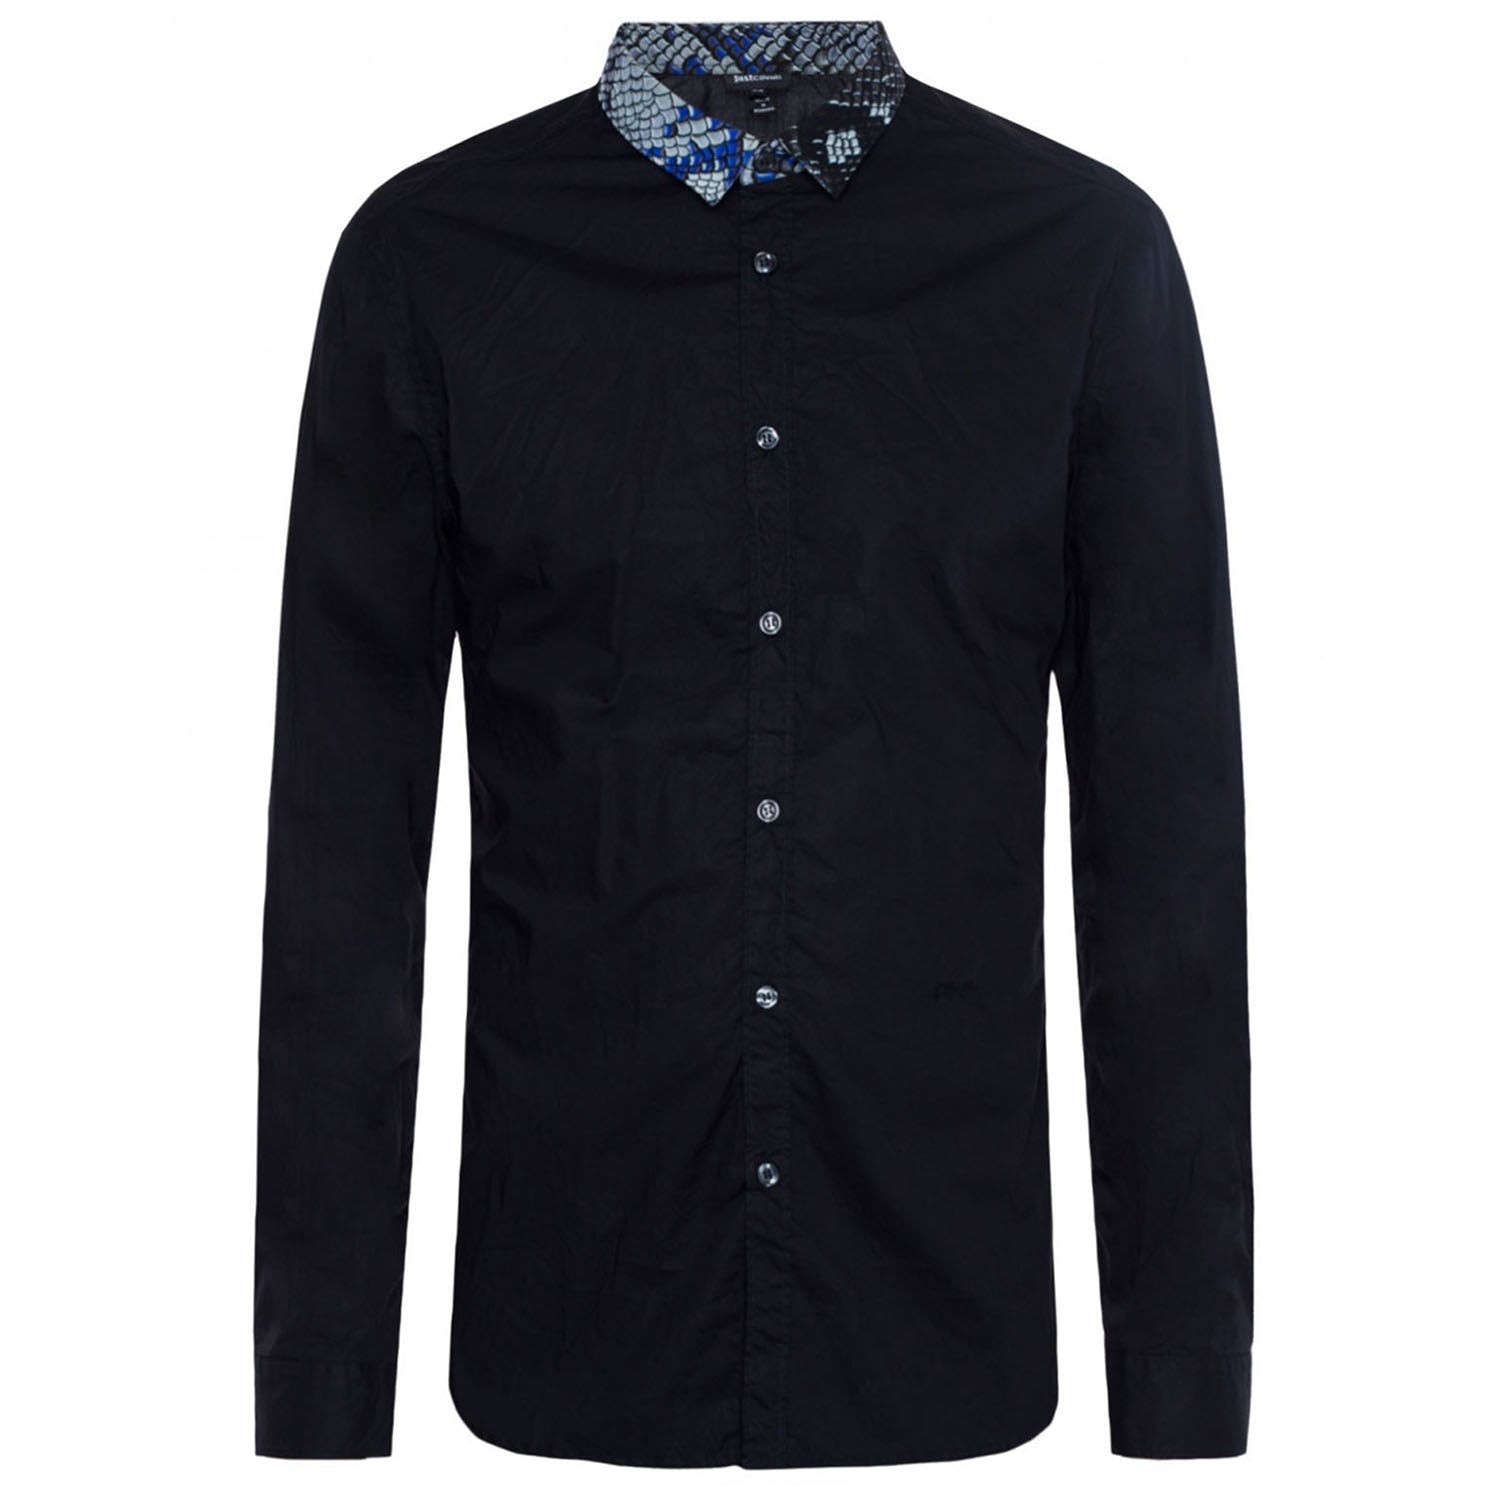 Just Cavalli Patterned Collar Shirt